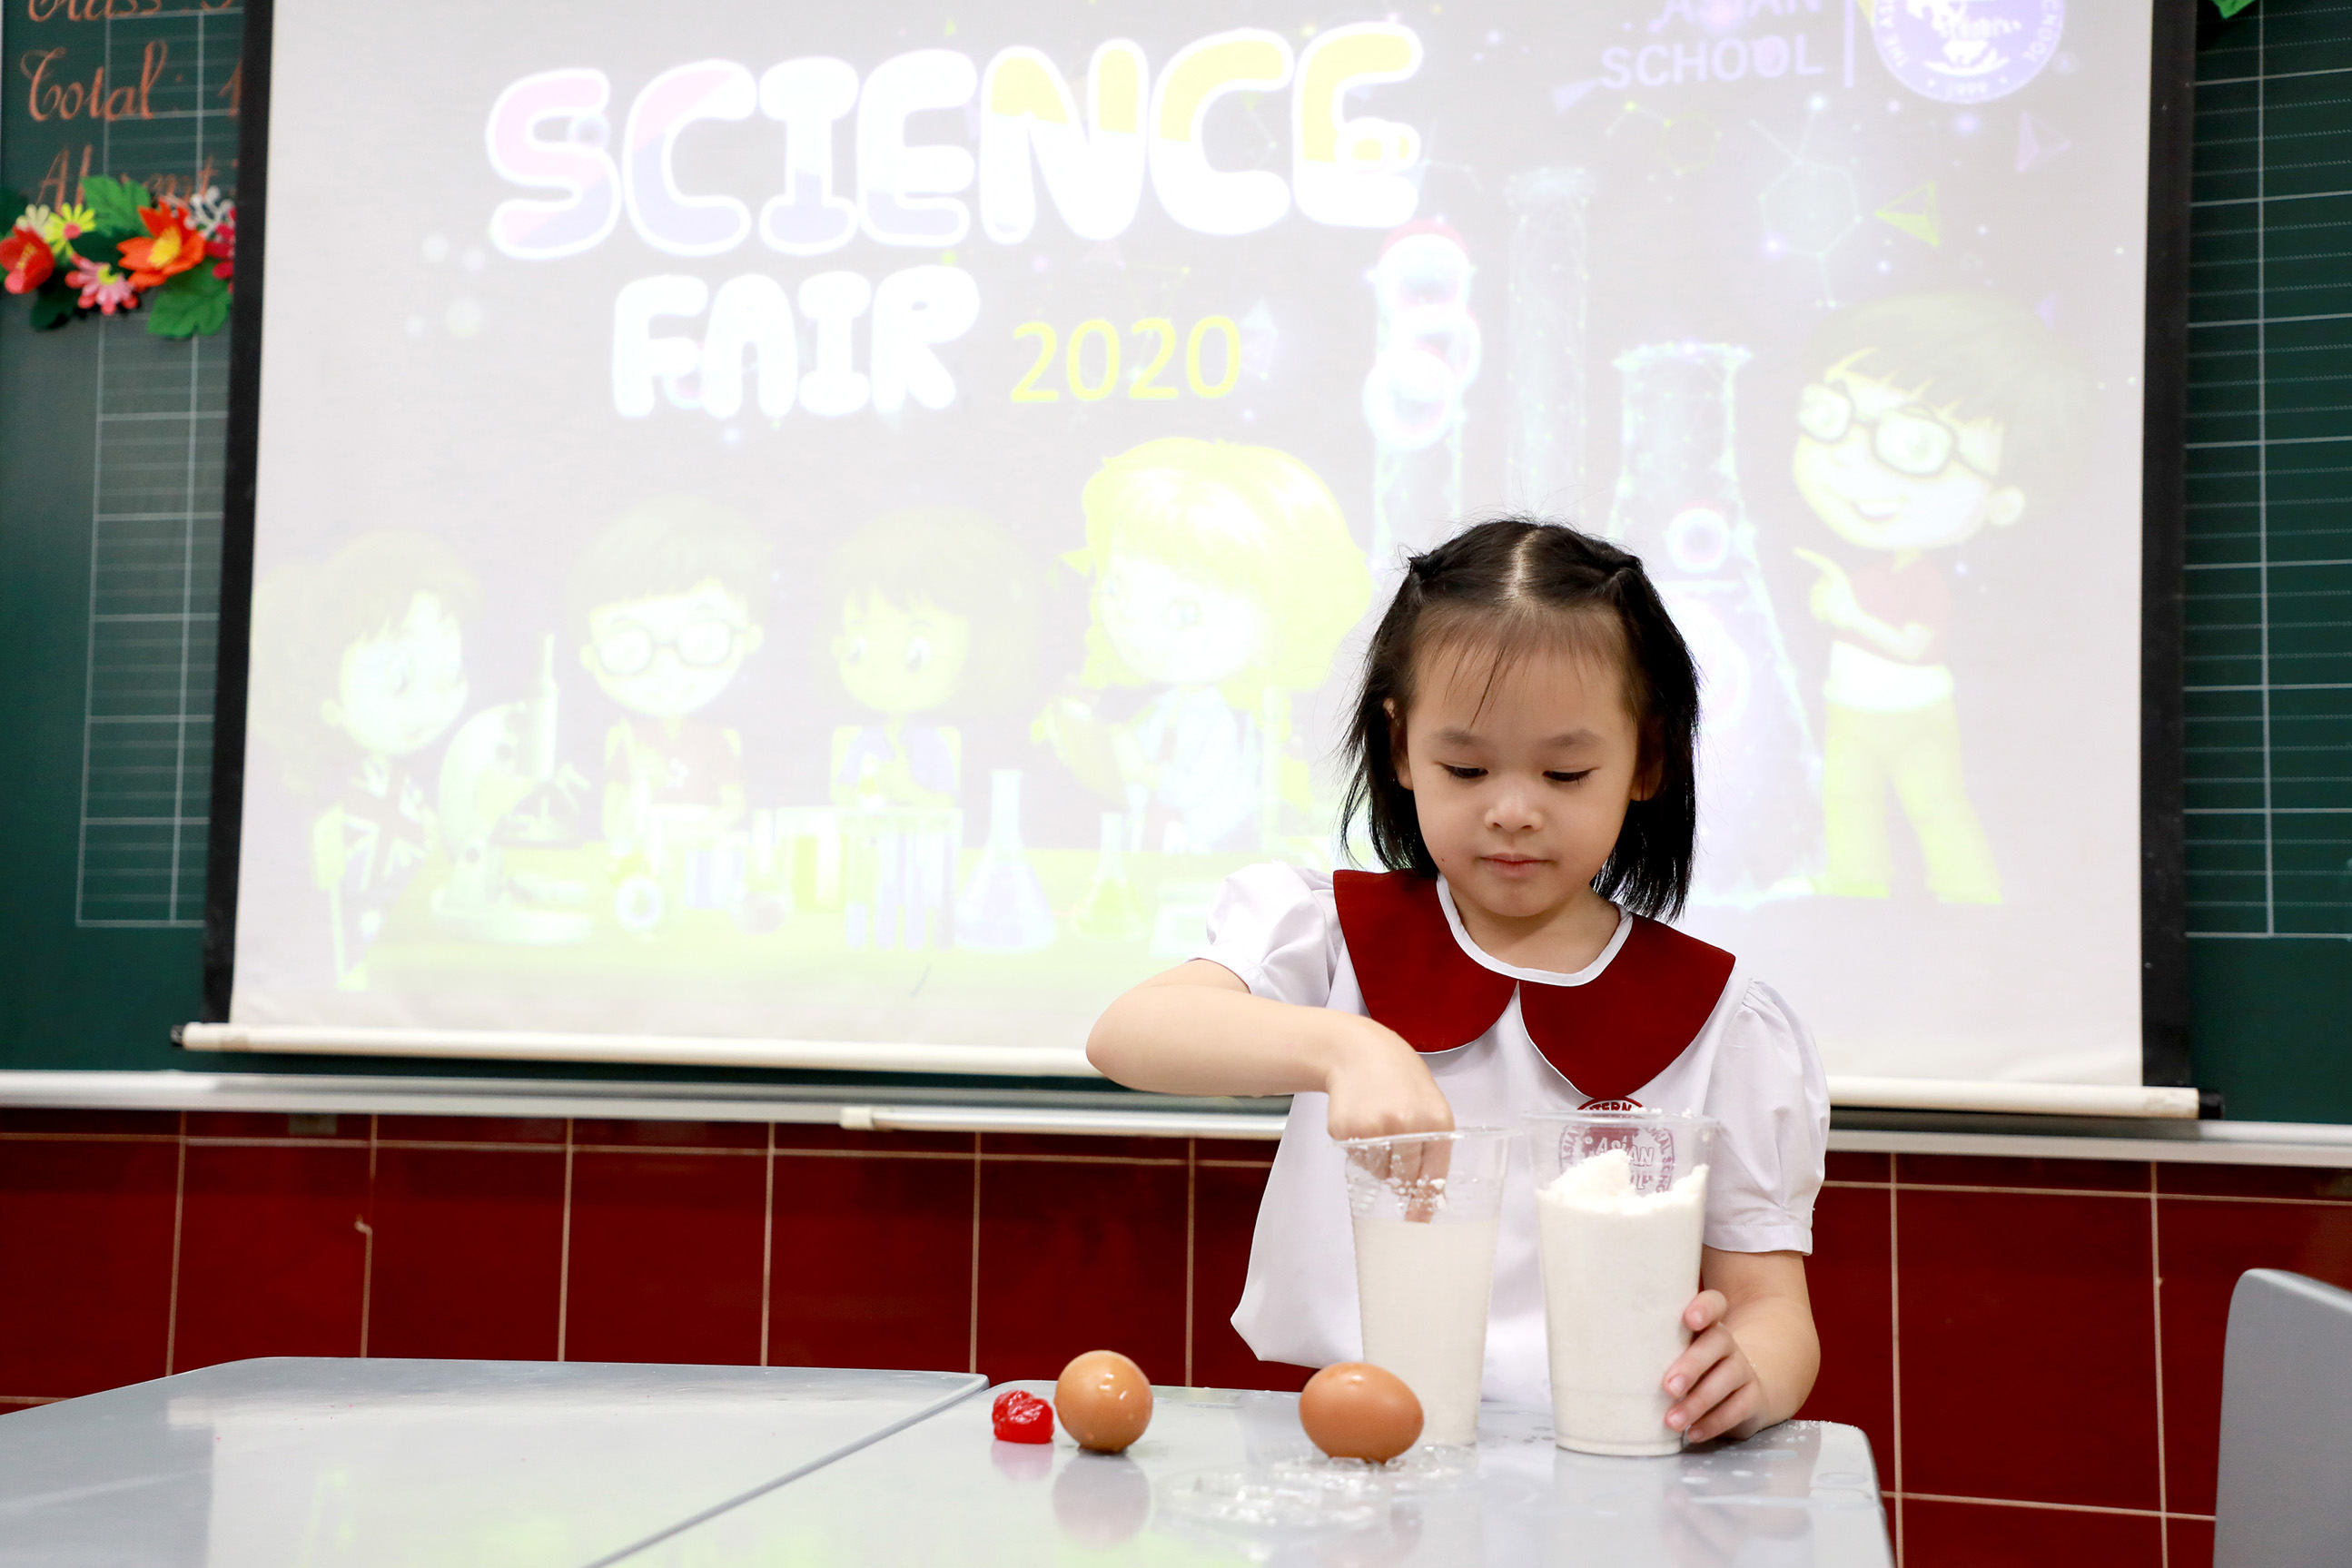 Science day 2020